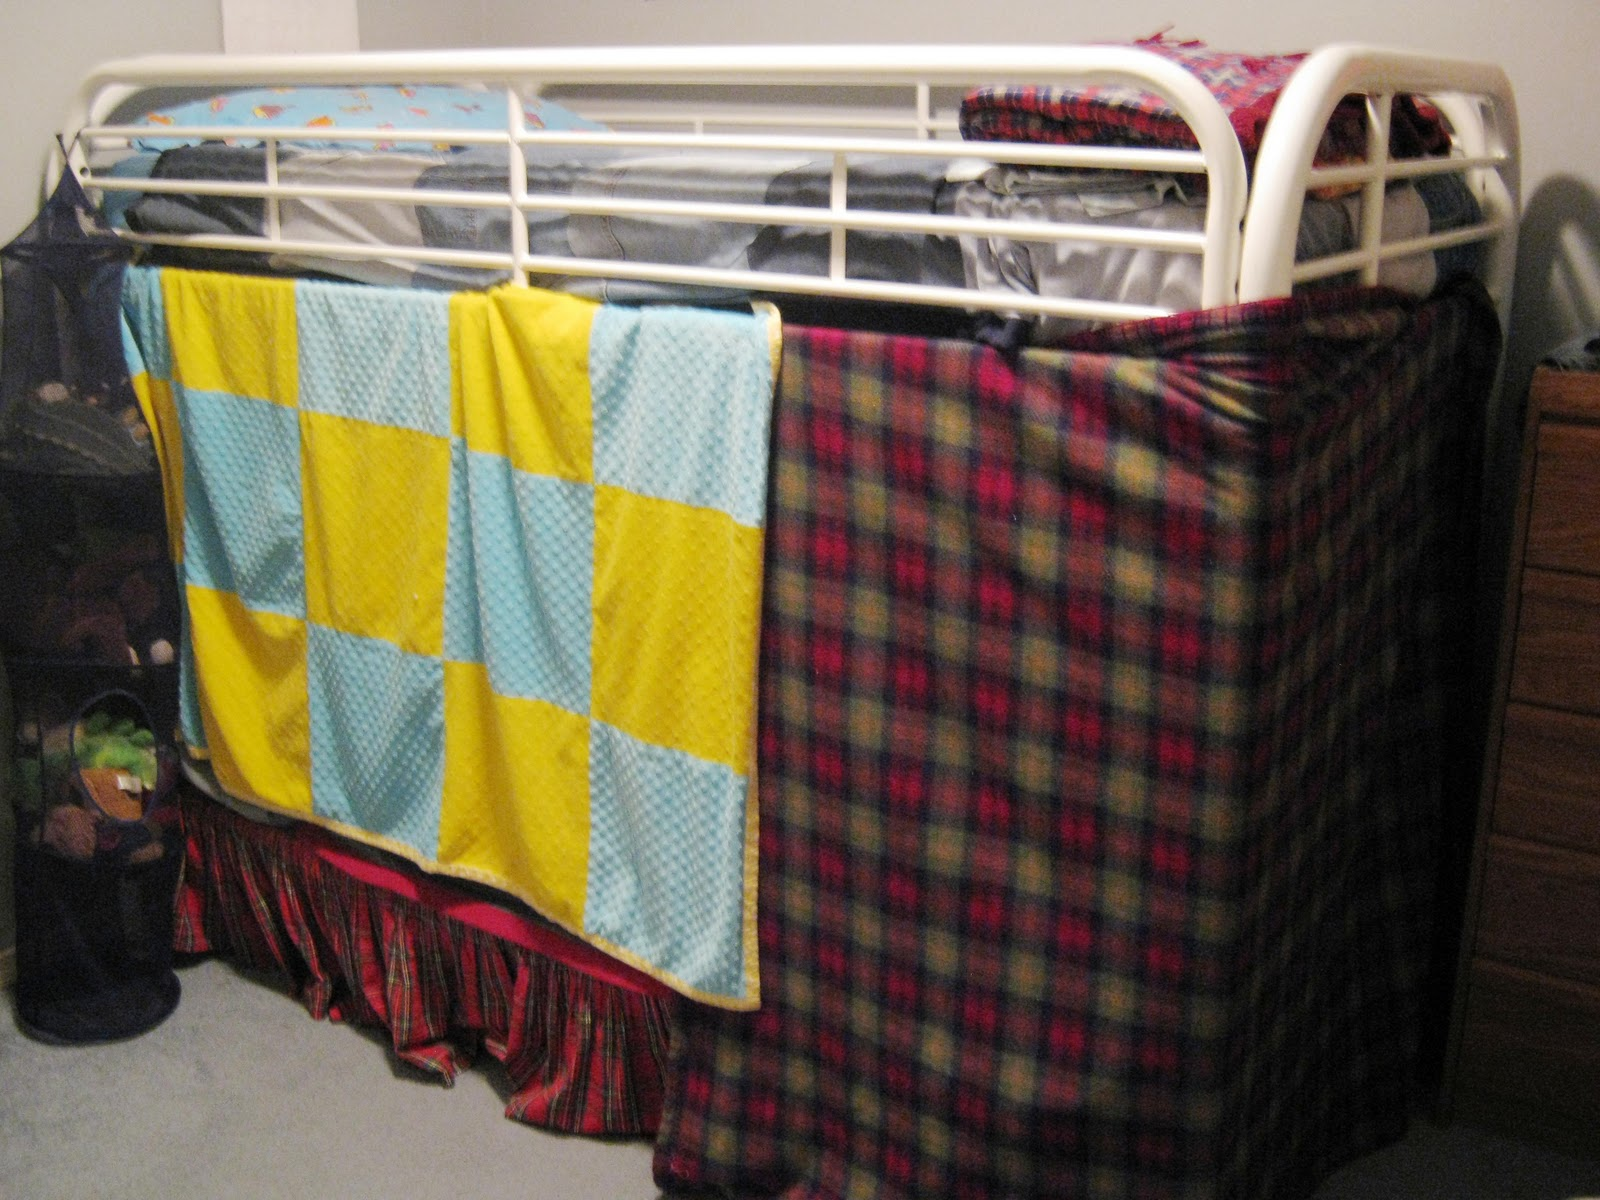 This Thrifty House Bunk Bed Tent